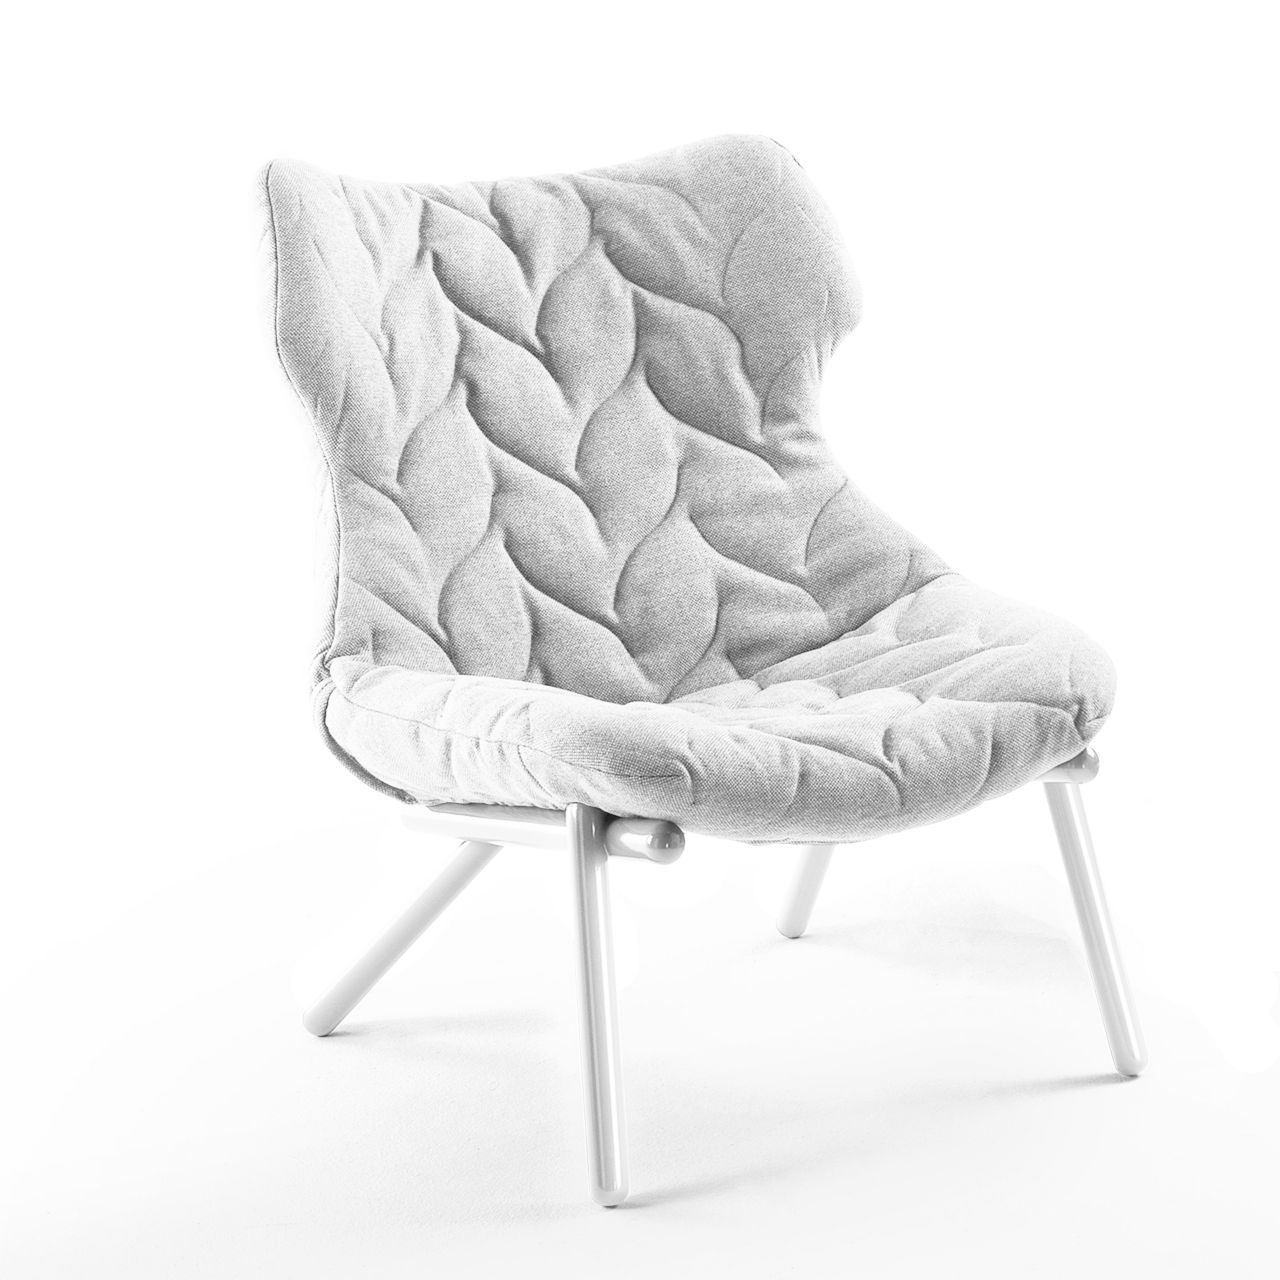 Foliage Chair in White by Kartell